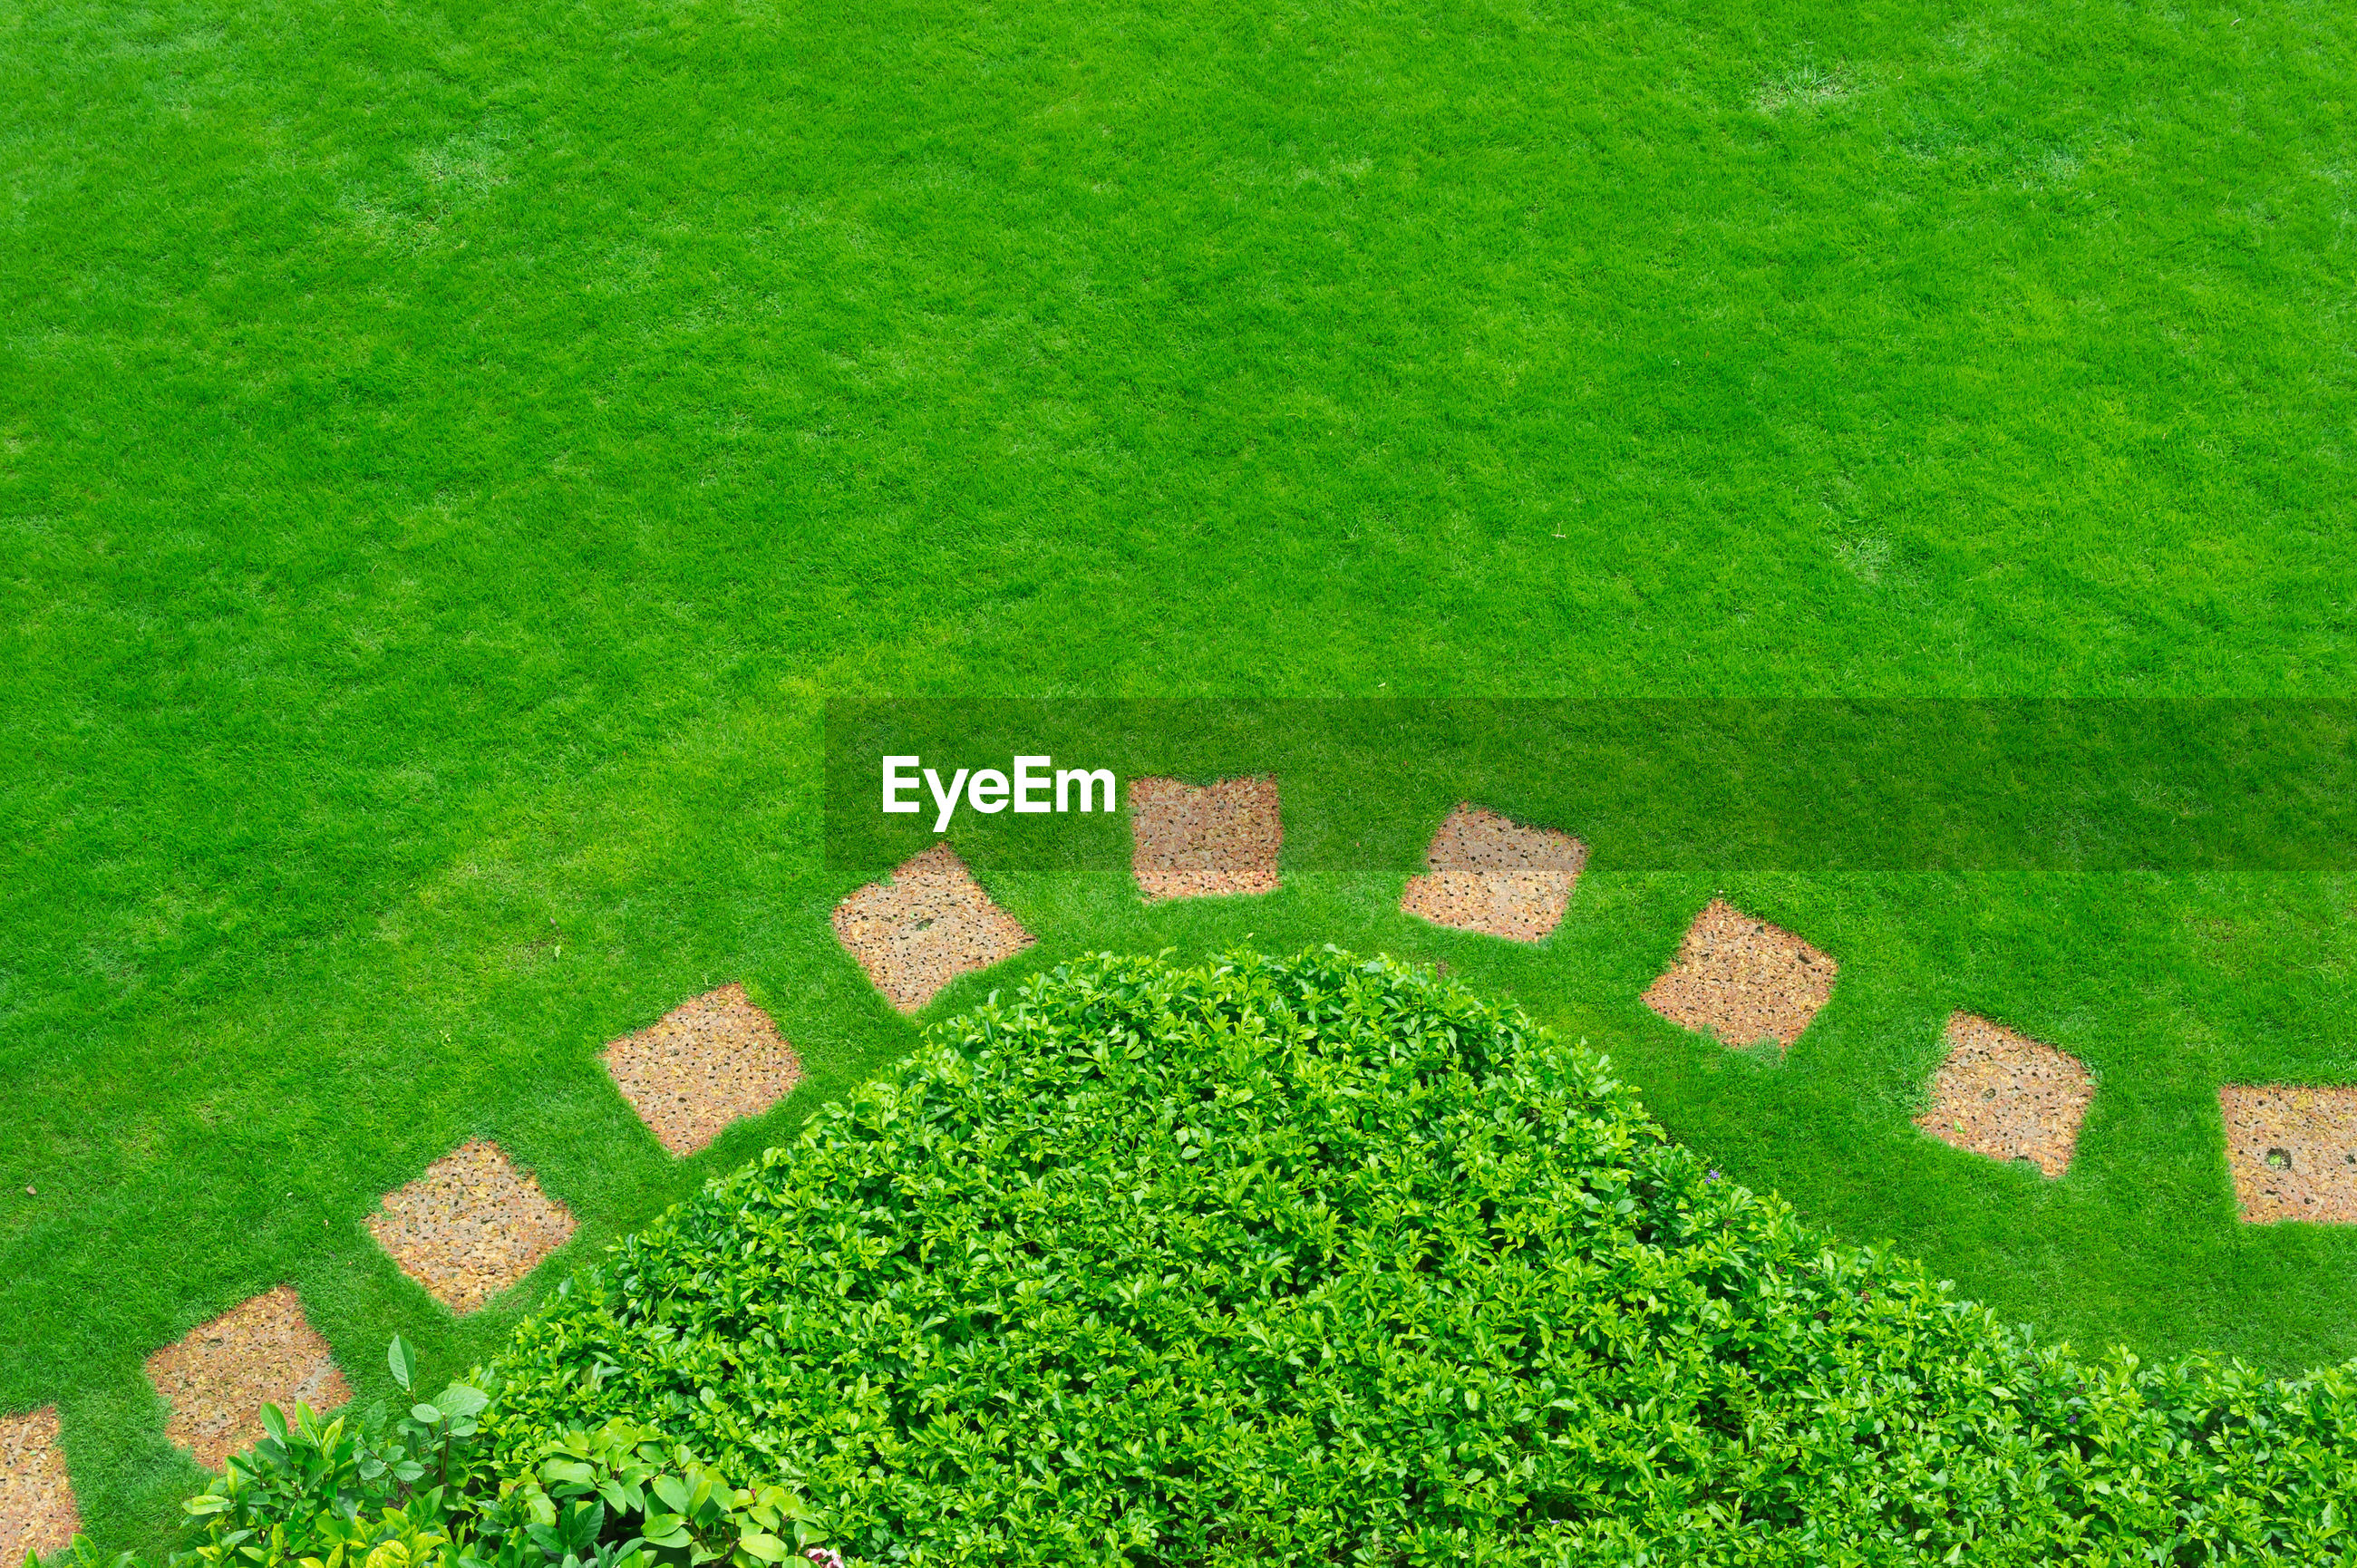 High angle view of stepping stones and grassy field in garden